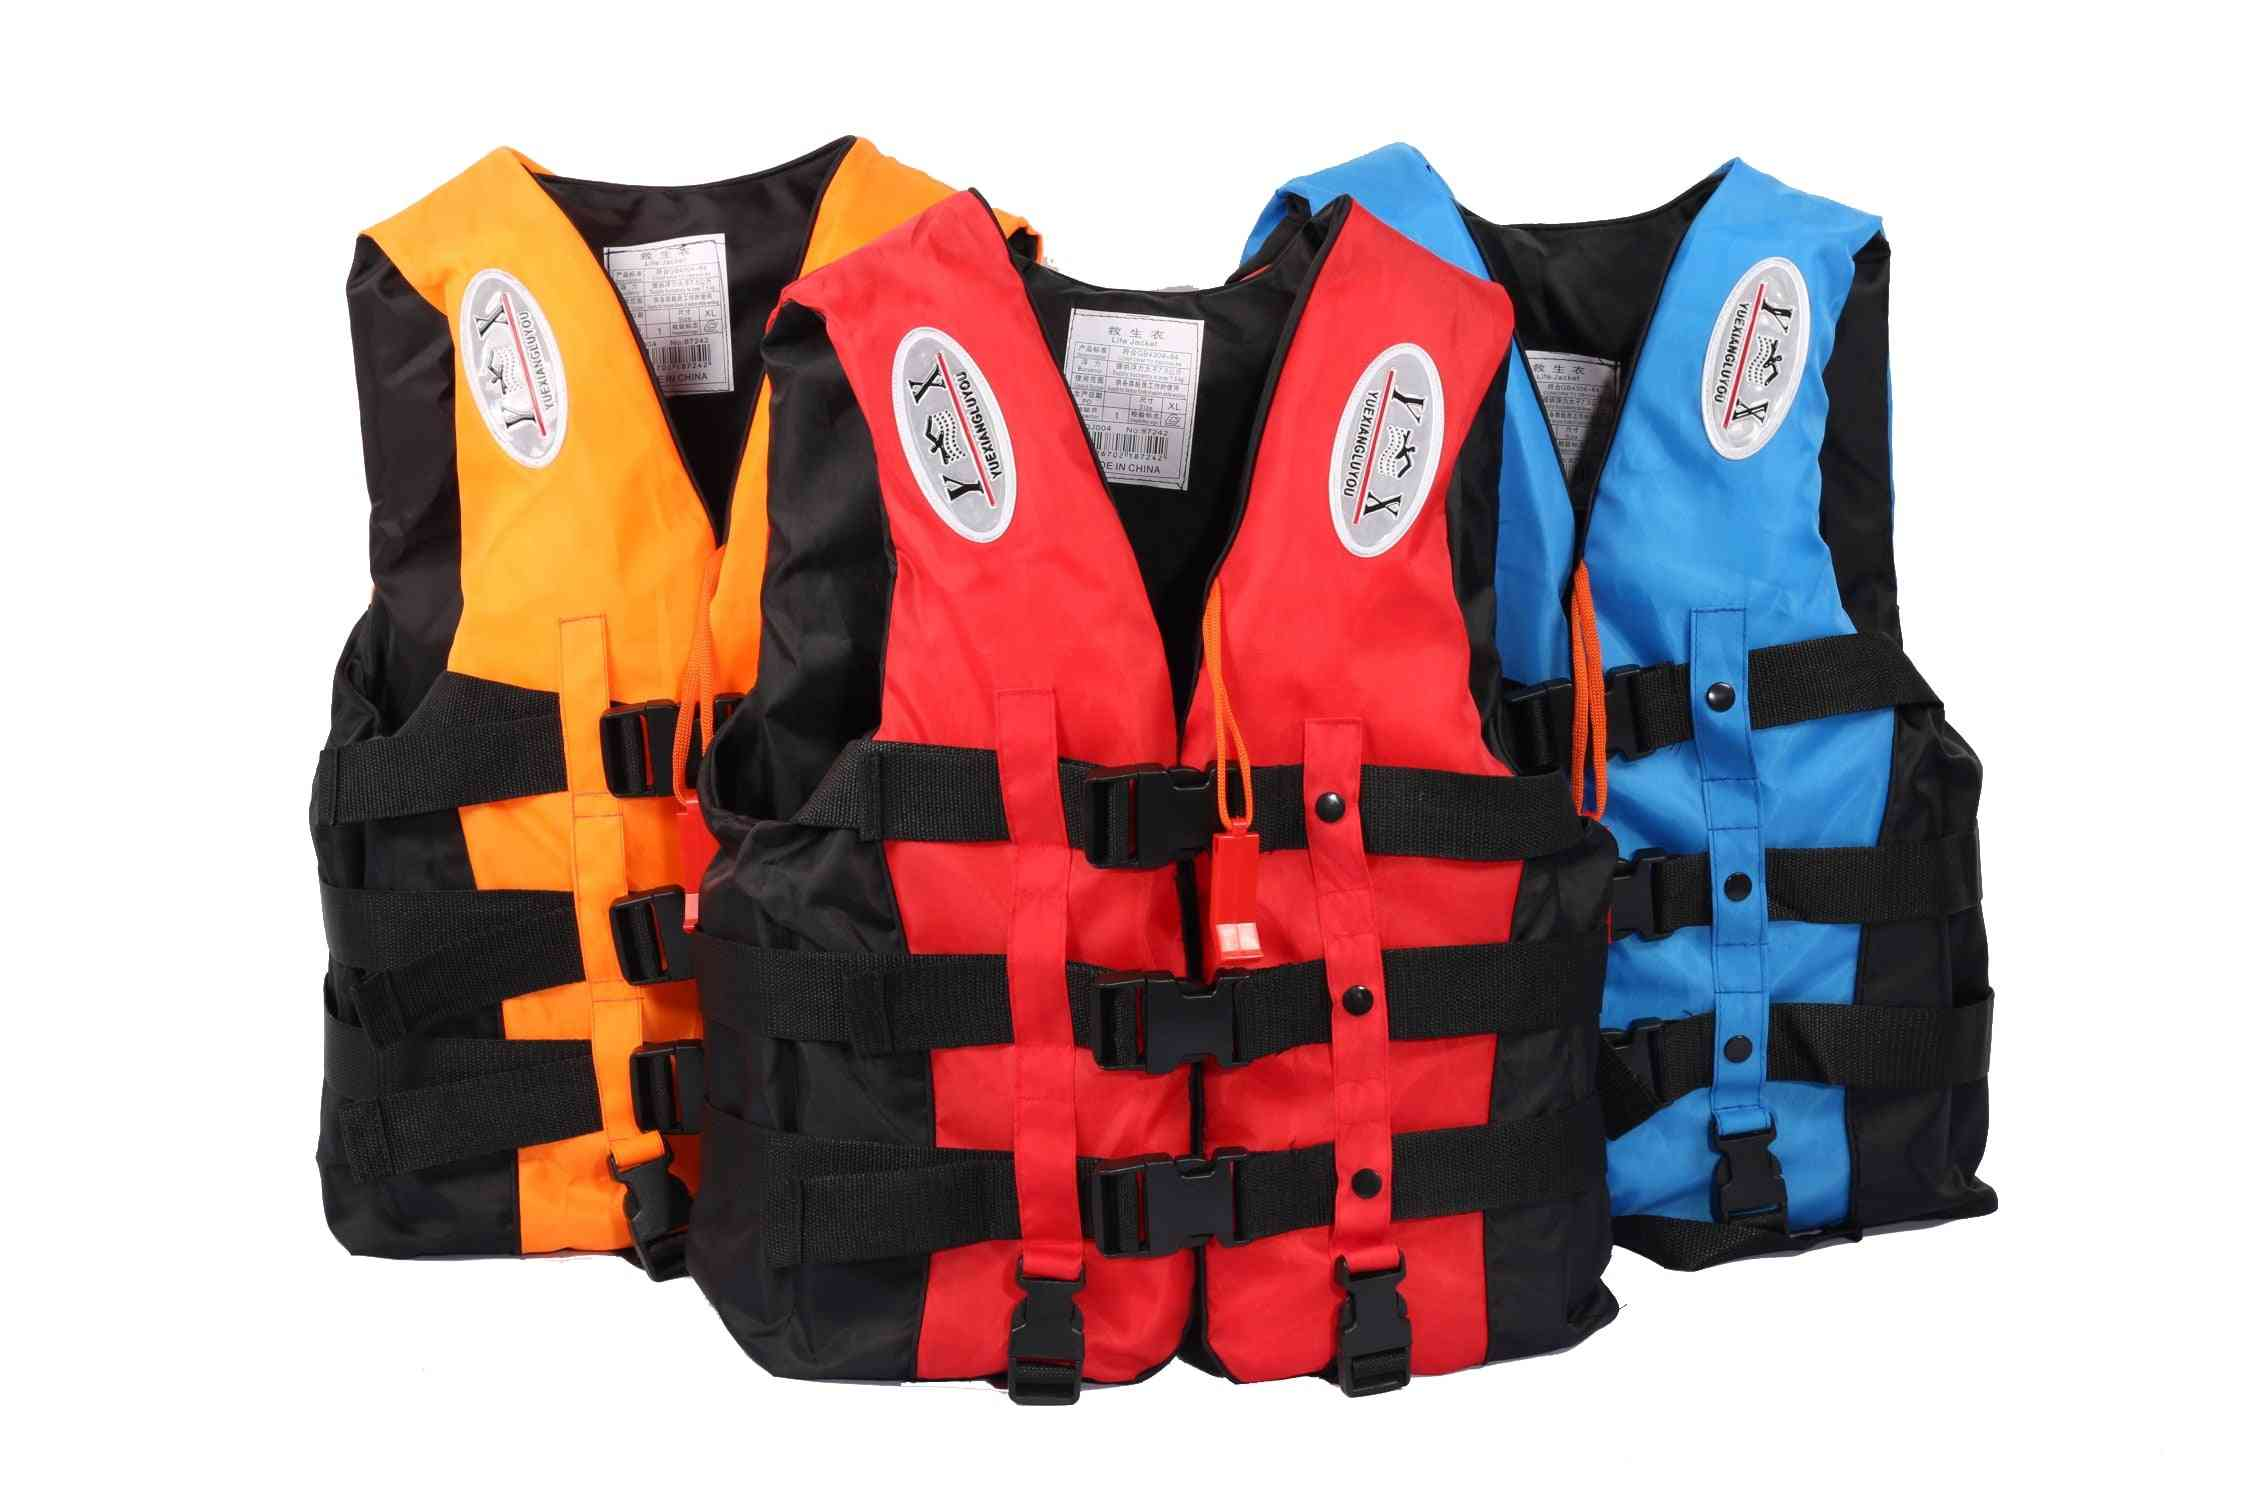 Universal Outdoor Swimming Boating Skiing Driving Vest Survival Suit